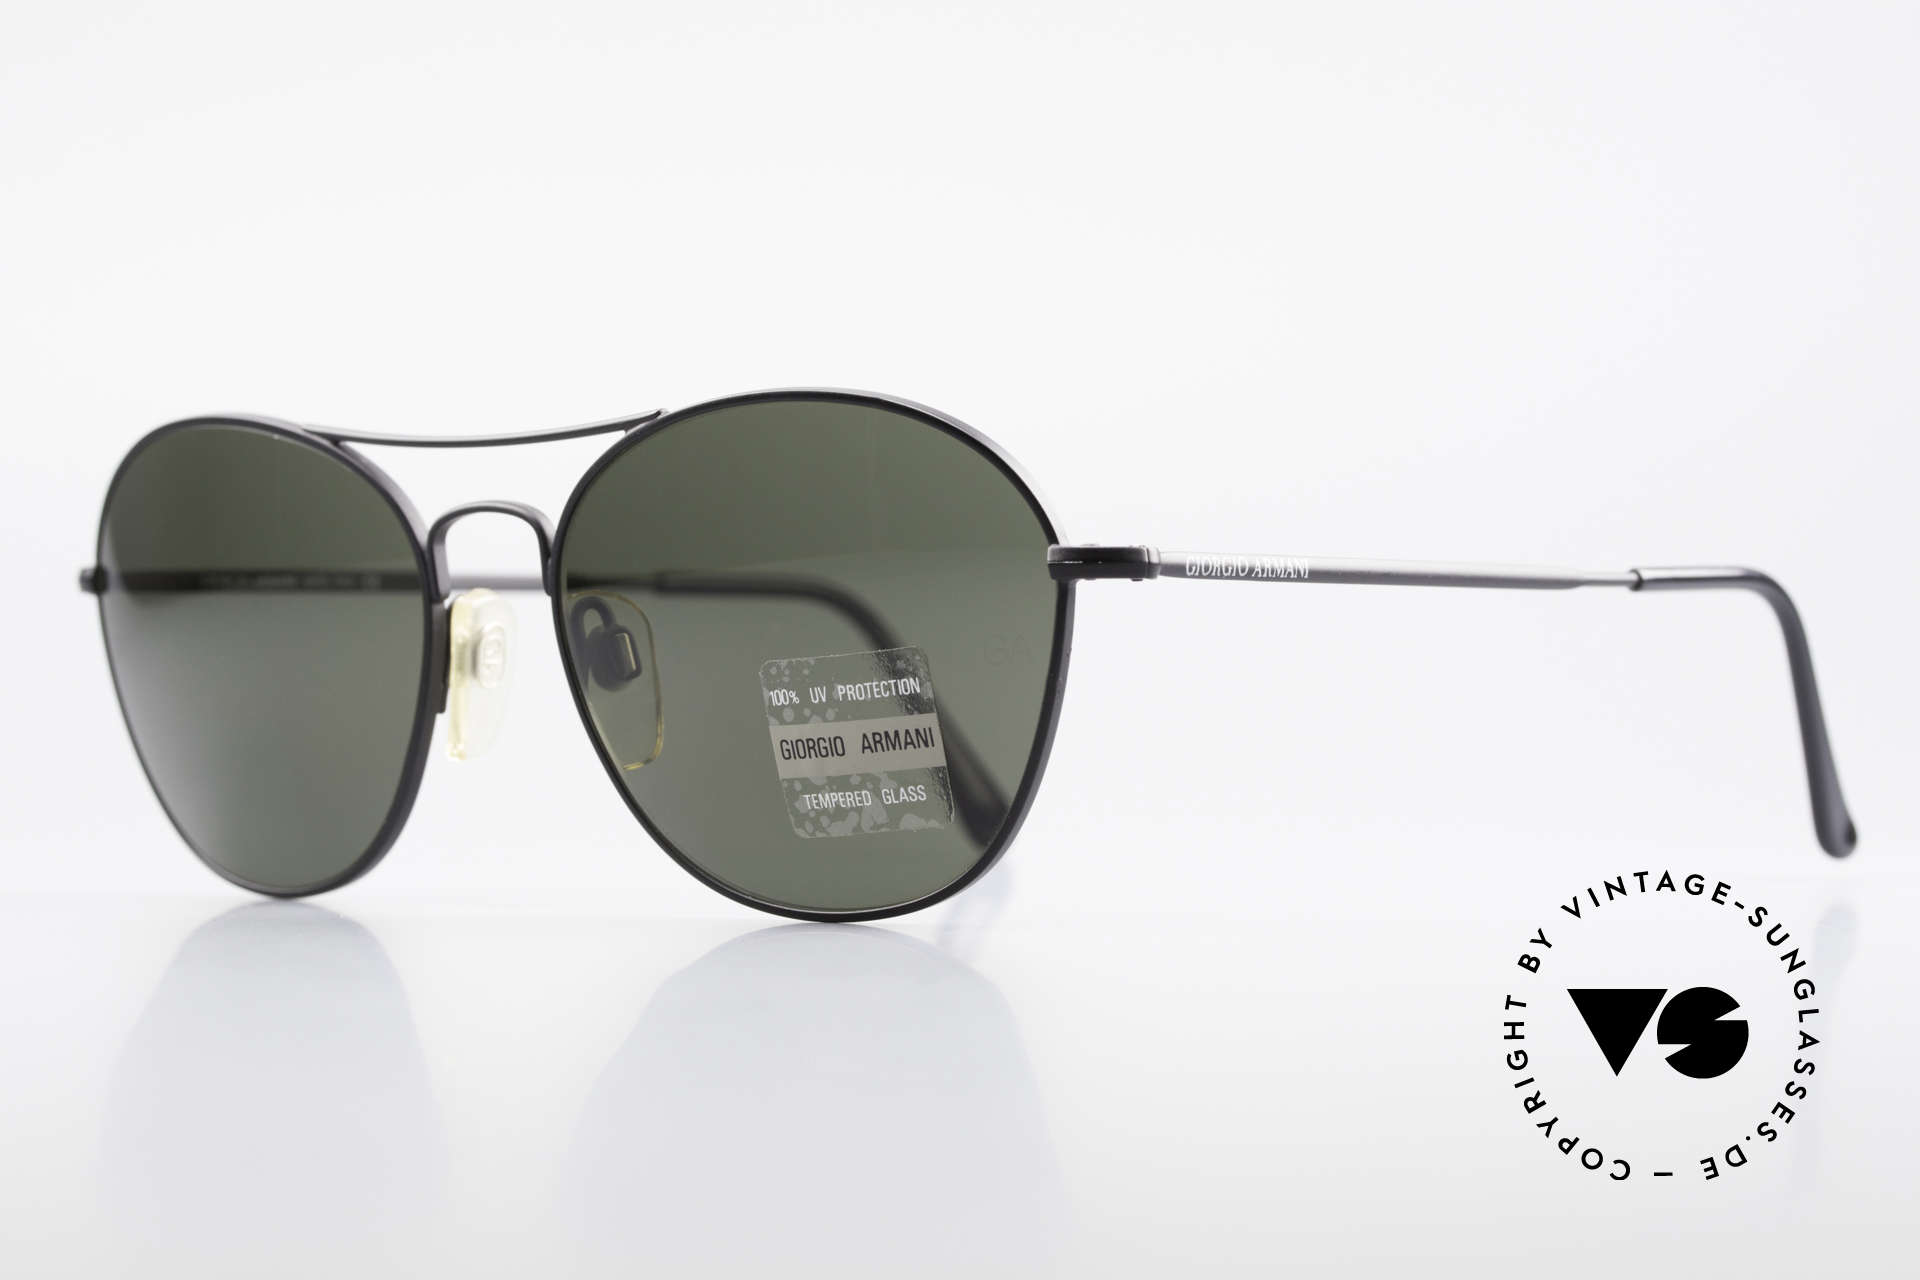 Giorgio Armani 646 Aviator Style Designer Shades, mineral lenses (100% UV) with the GA engraving, Made for Men